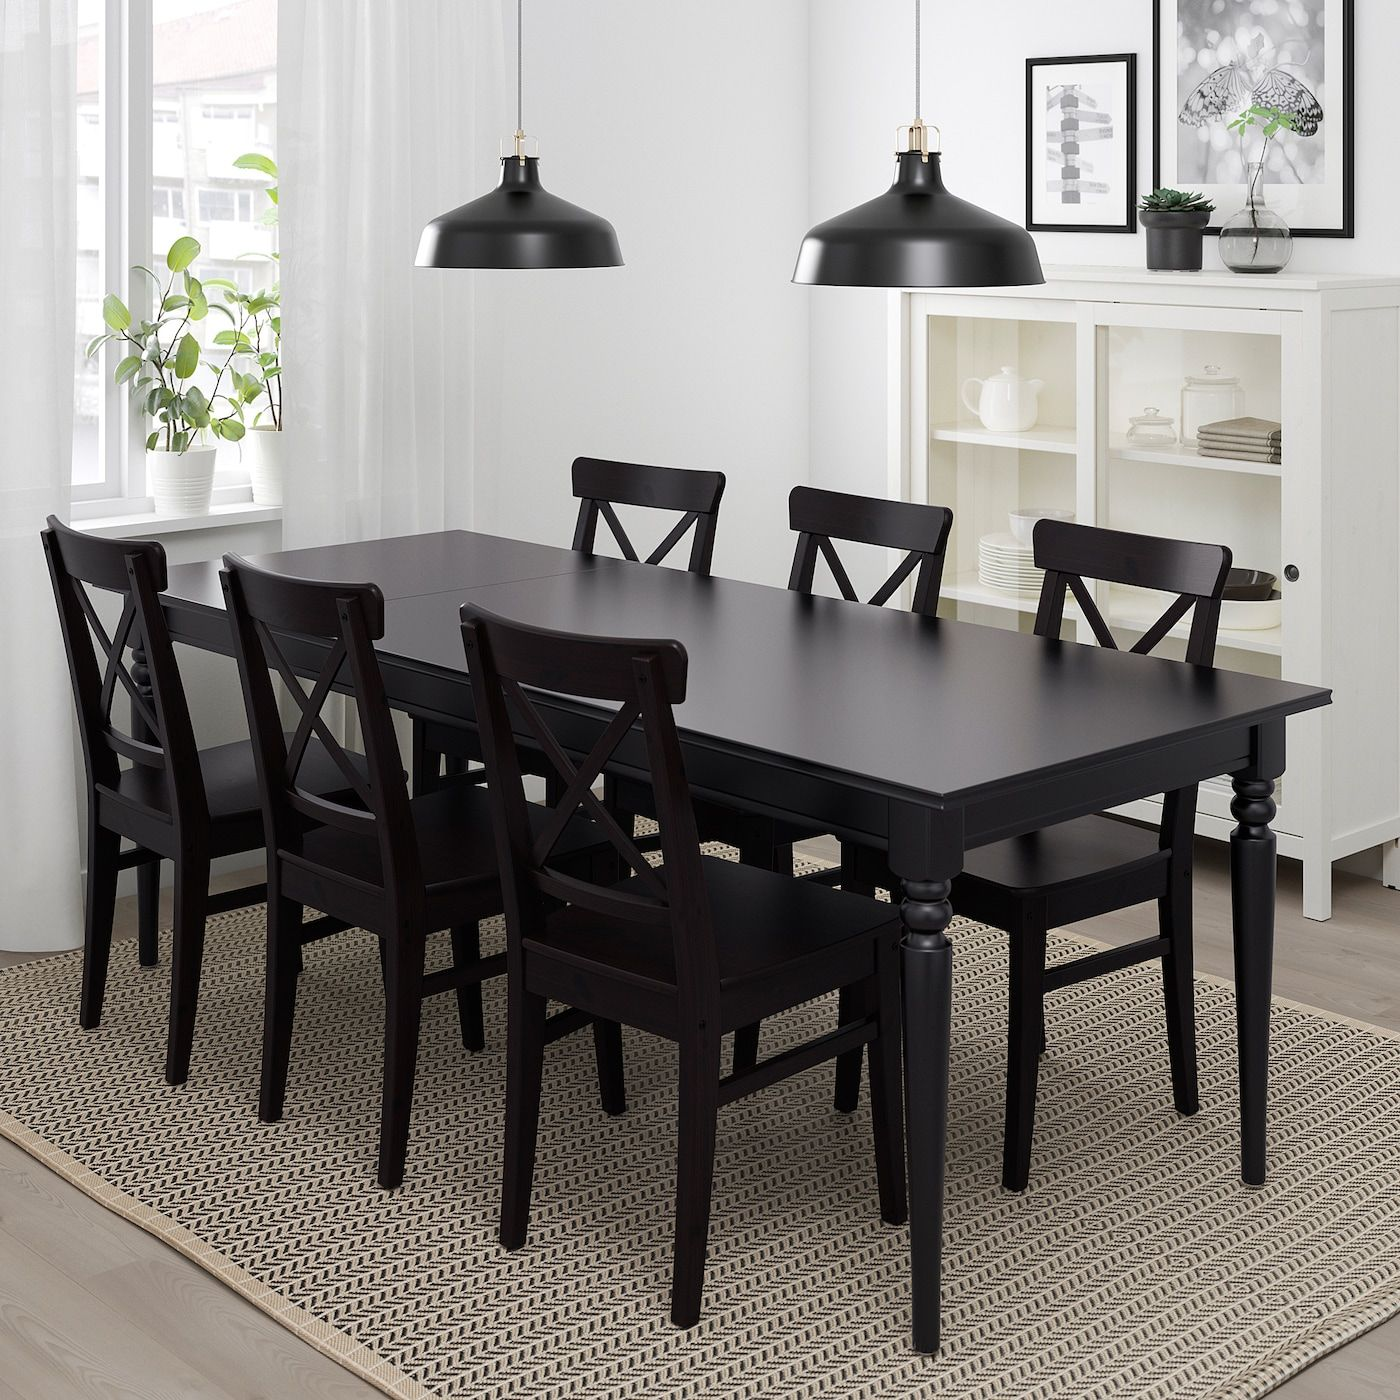 29+ Ikea dining table and six chairs Various Types